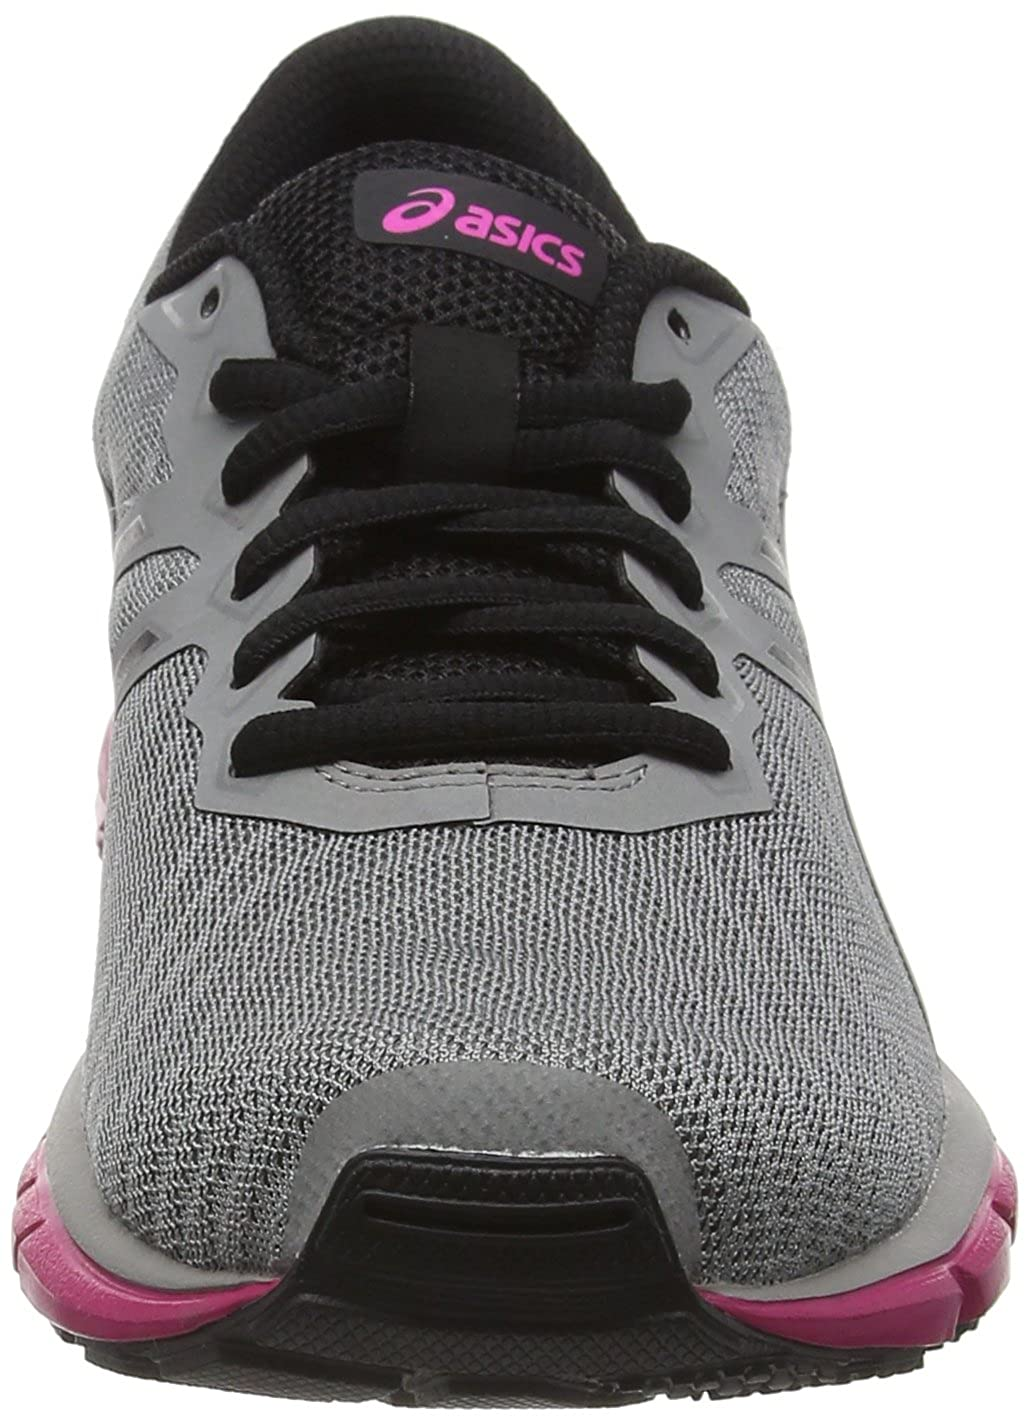 ASICS GEL-ZARACA 5 Women s Running Shoes (T6G8N)  Amazon.co.uk  Shoes   Bags 732de16aa9